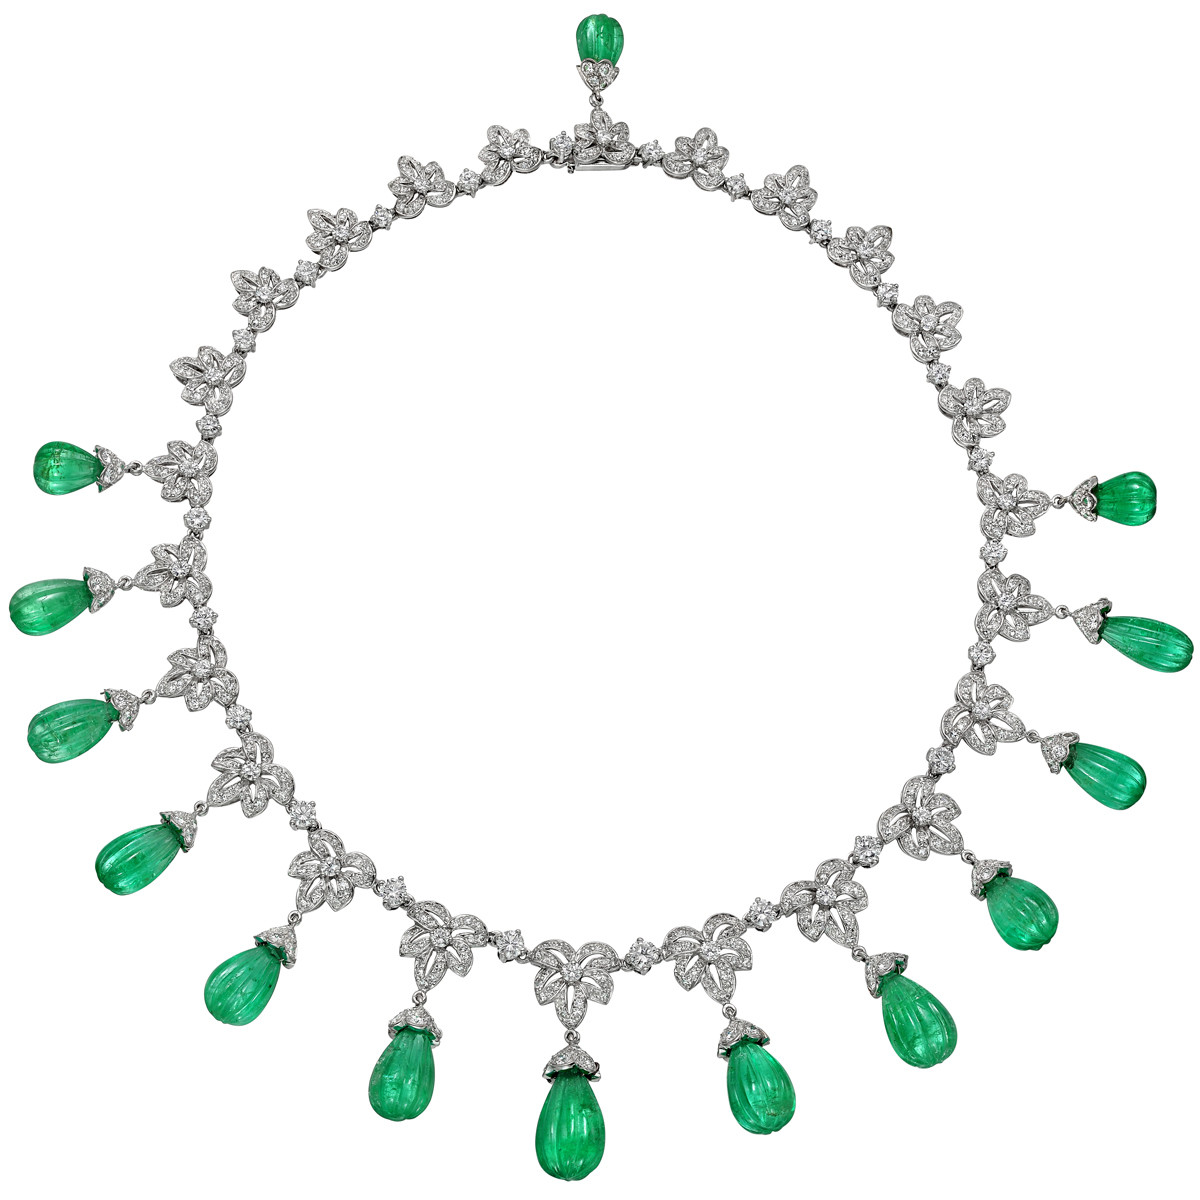 Emerald & Diamond Fringe Necklace